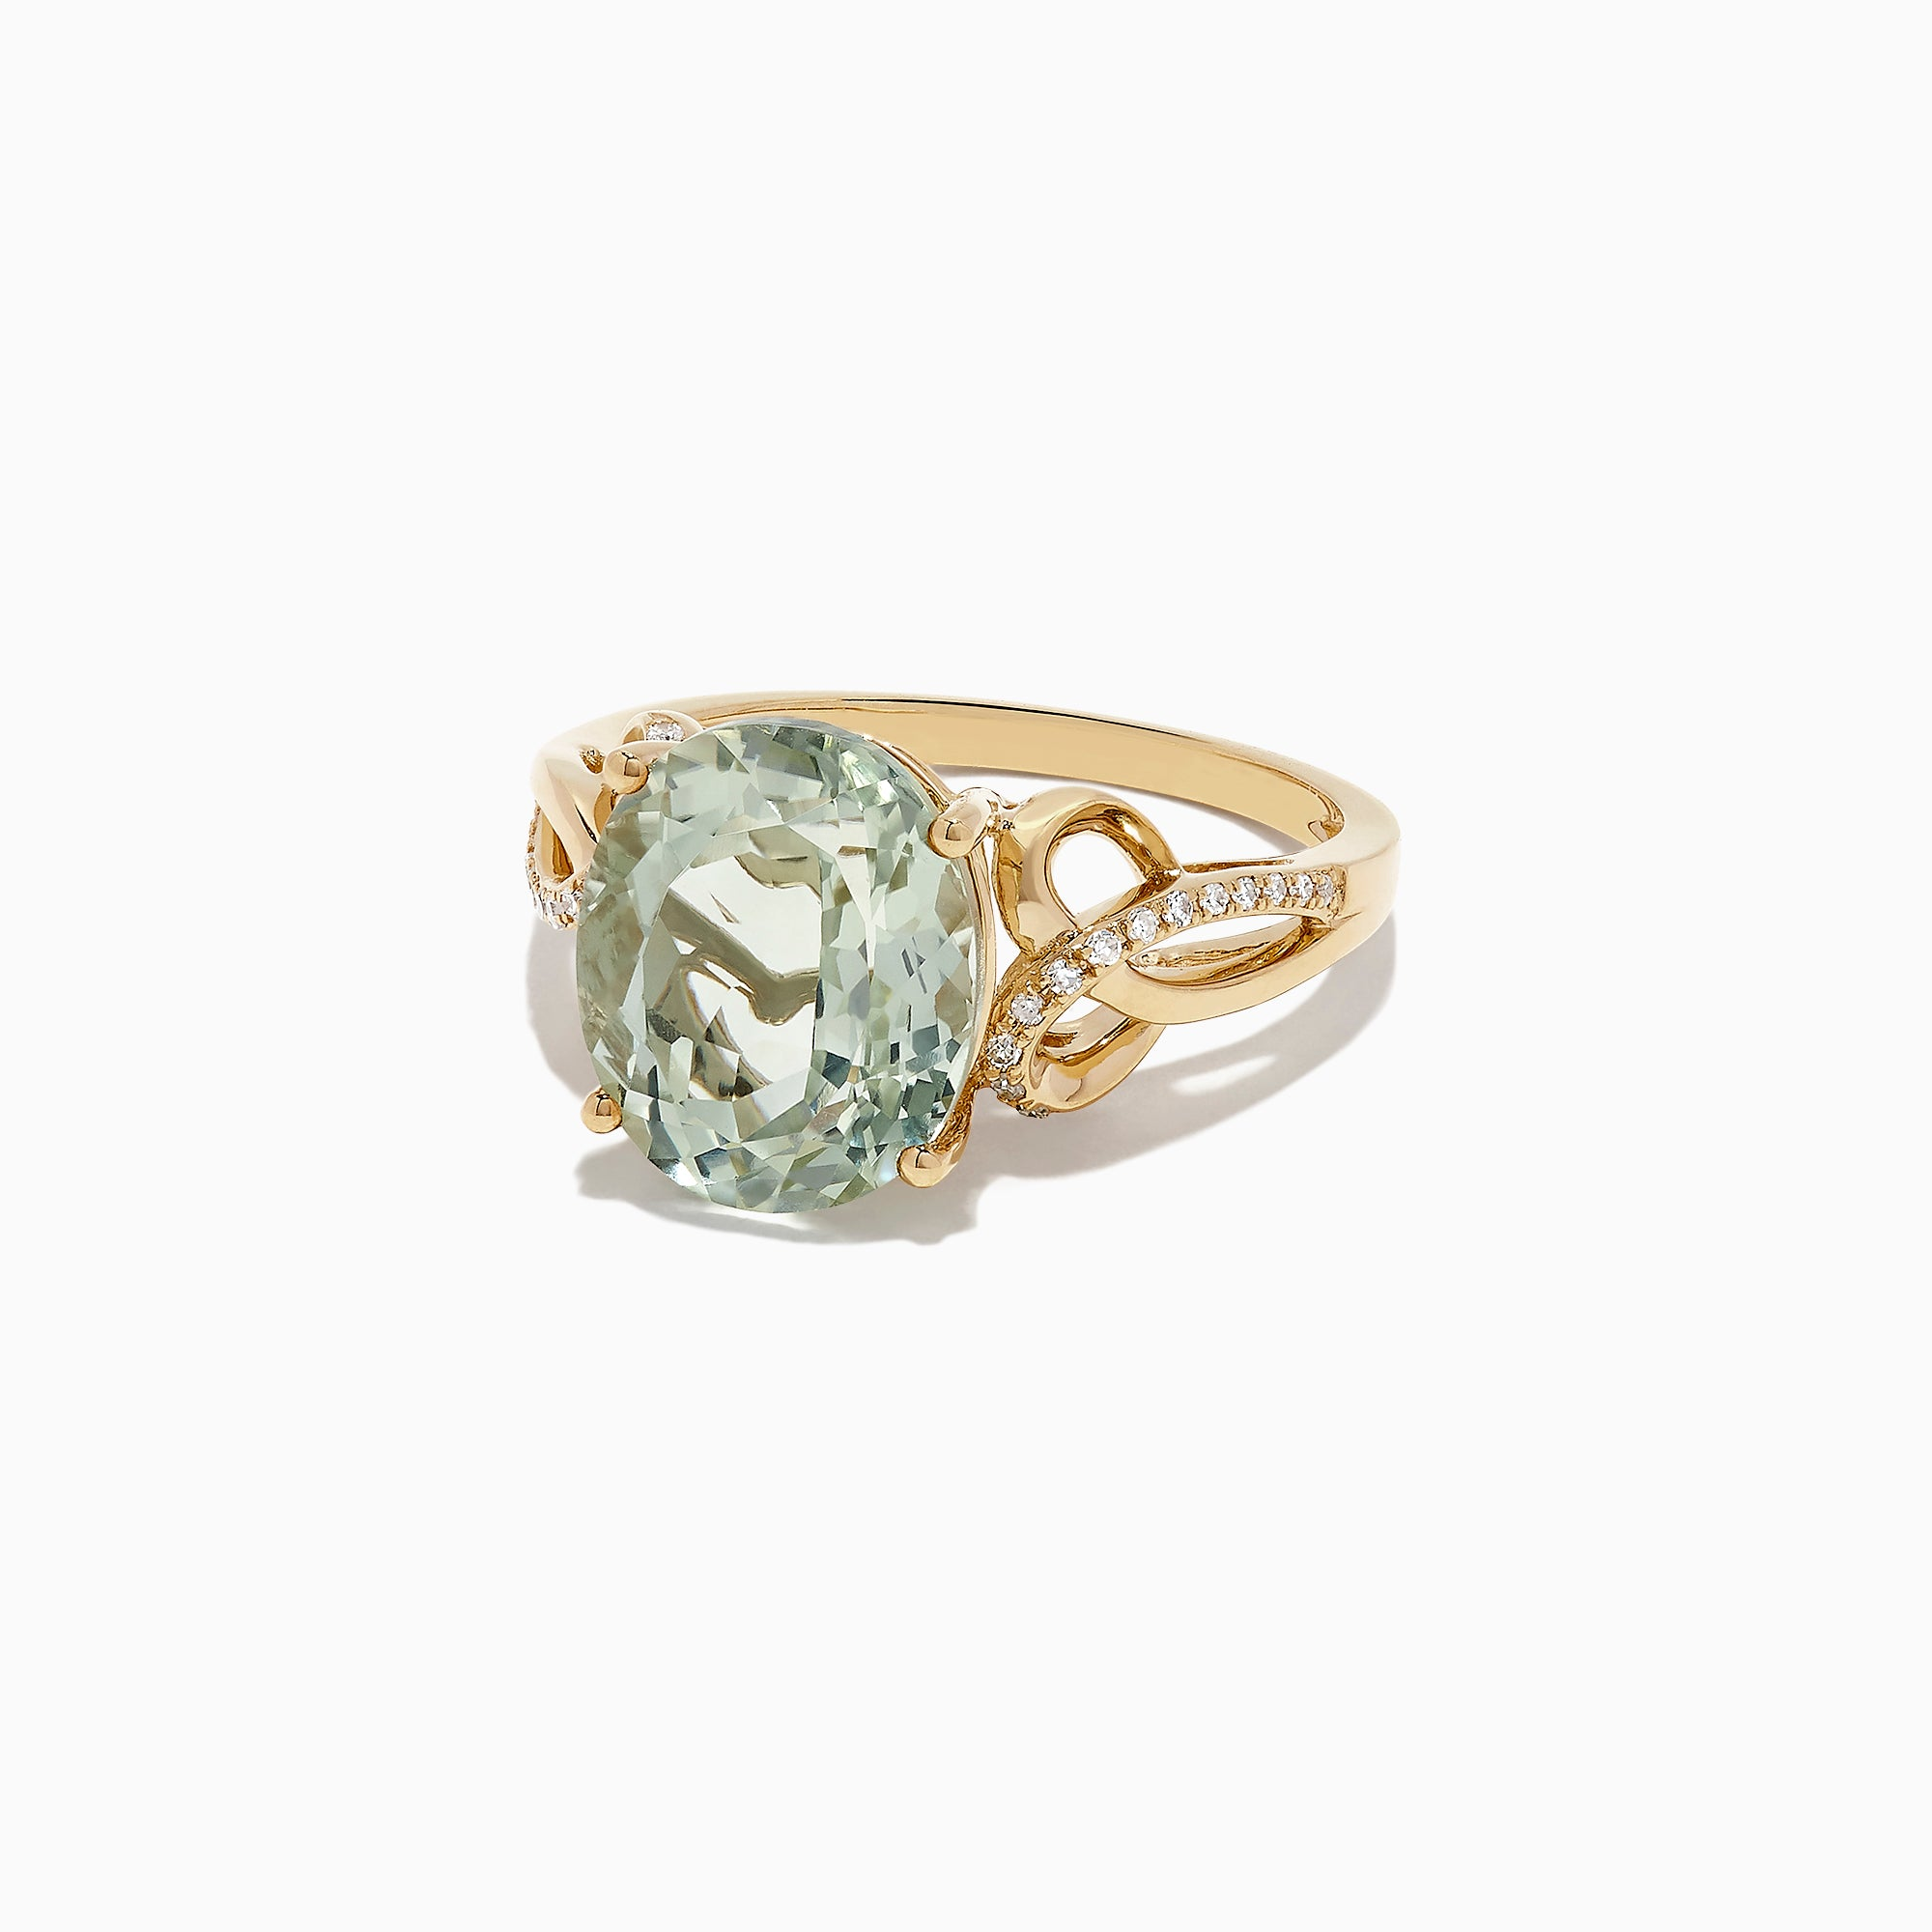 Effy 14K Yellow Gold Green Amethyst and Diamond Ring, 4.46 TCW